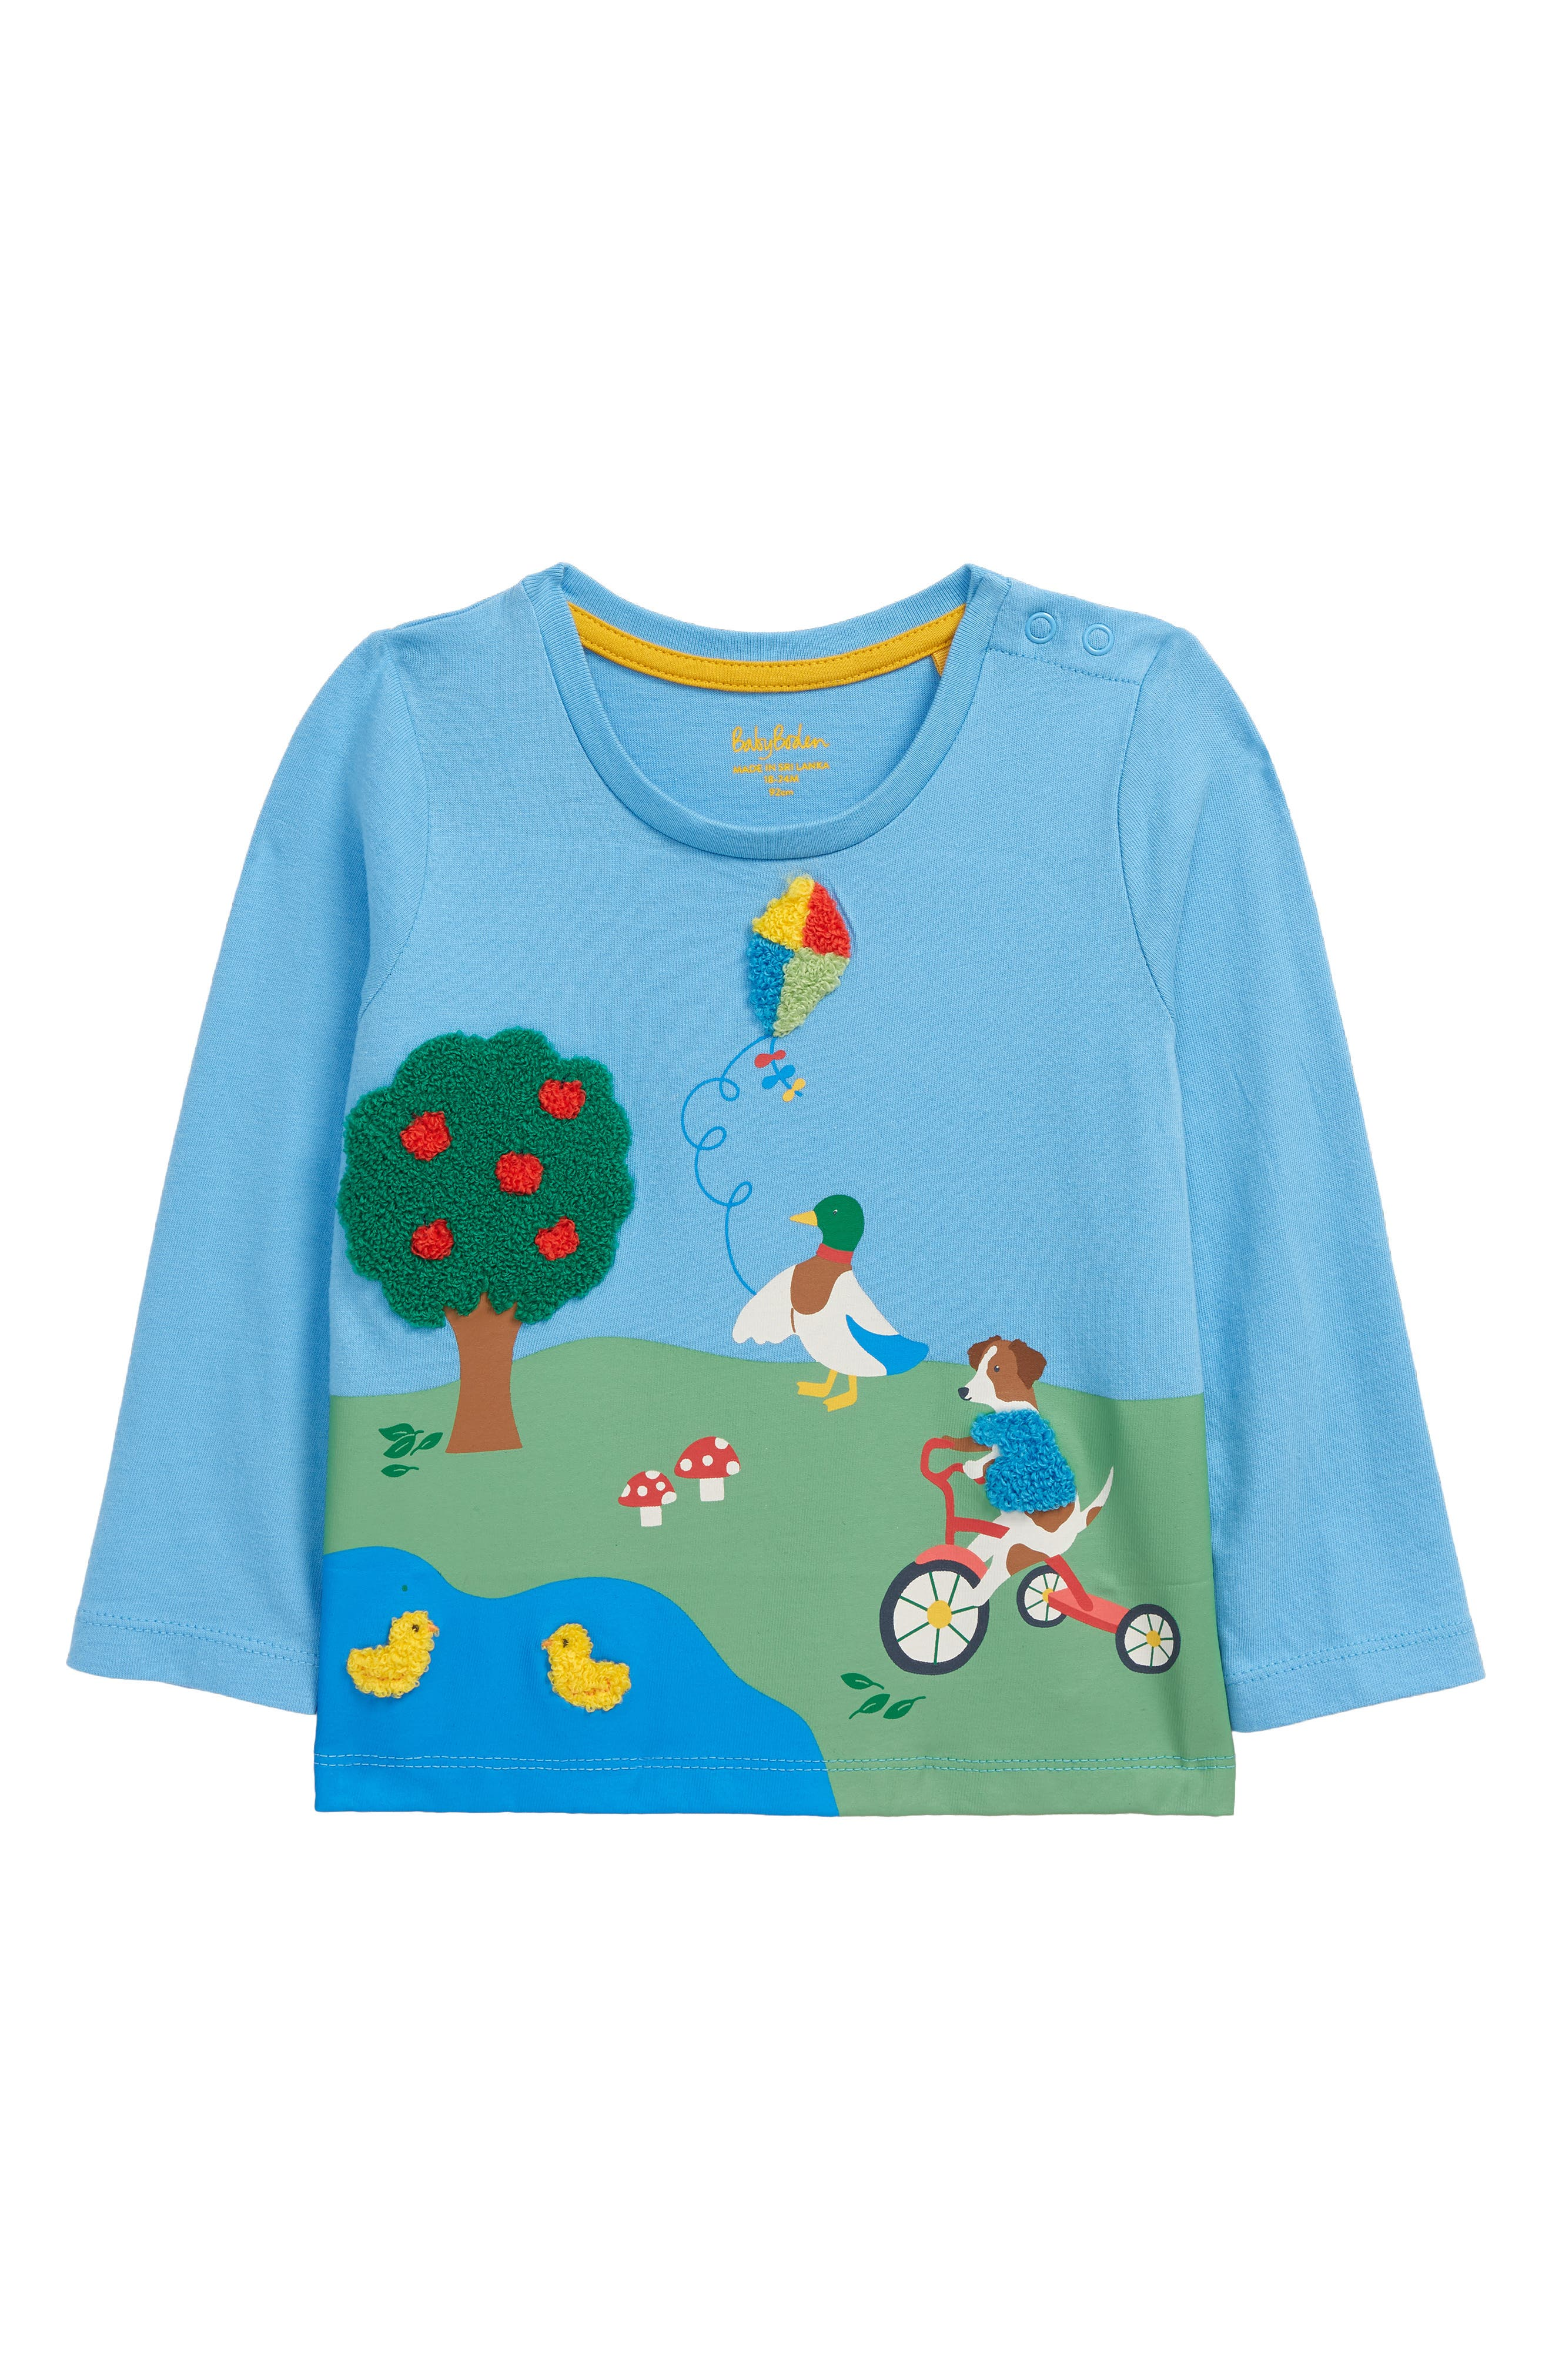 Textures, colors and friendly animals offer a lot to talk about on a soft cotton graphic tee that stays comfortable as it stimulates curiosity. Style Name: Mini Boden Park Scene Long Sleeve Graphic Tee (Baby). Style Number: 6119199. Available in stores.